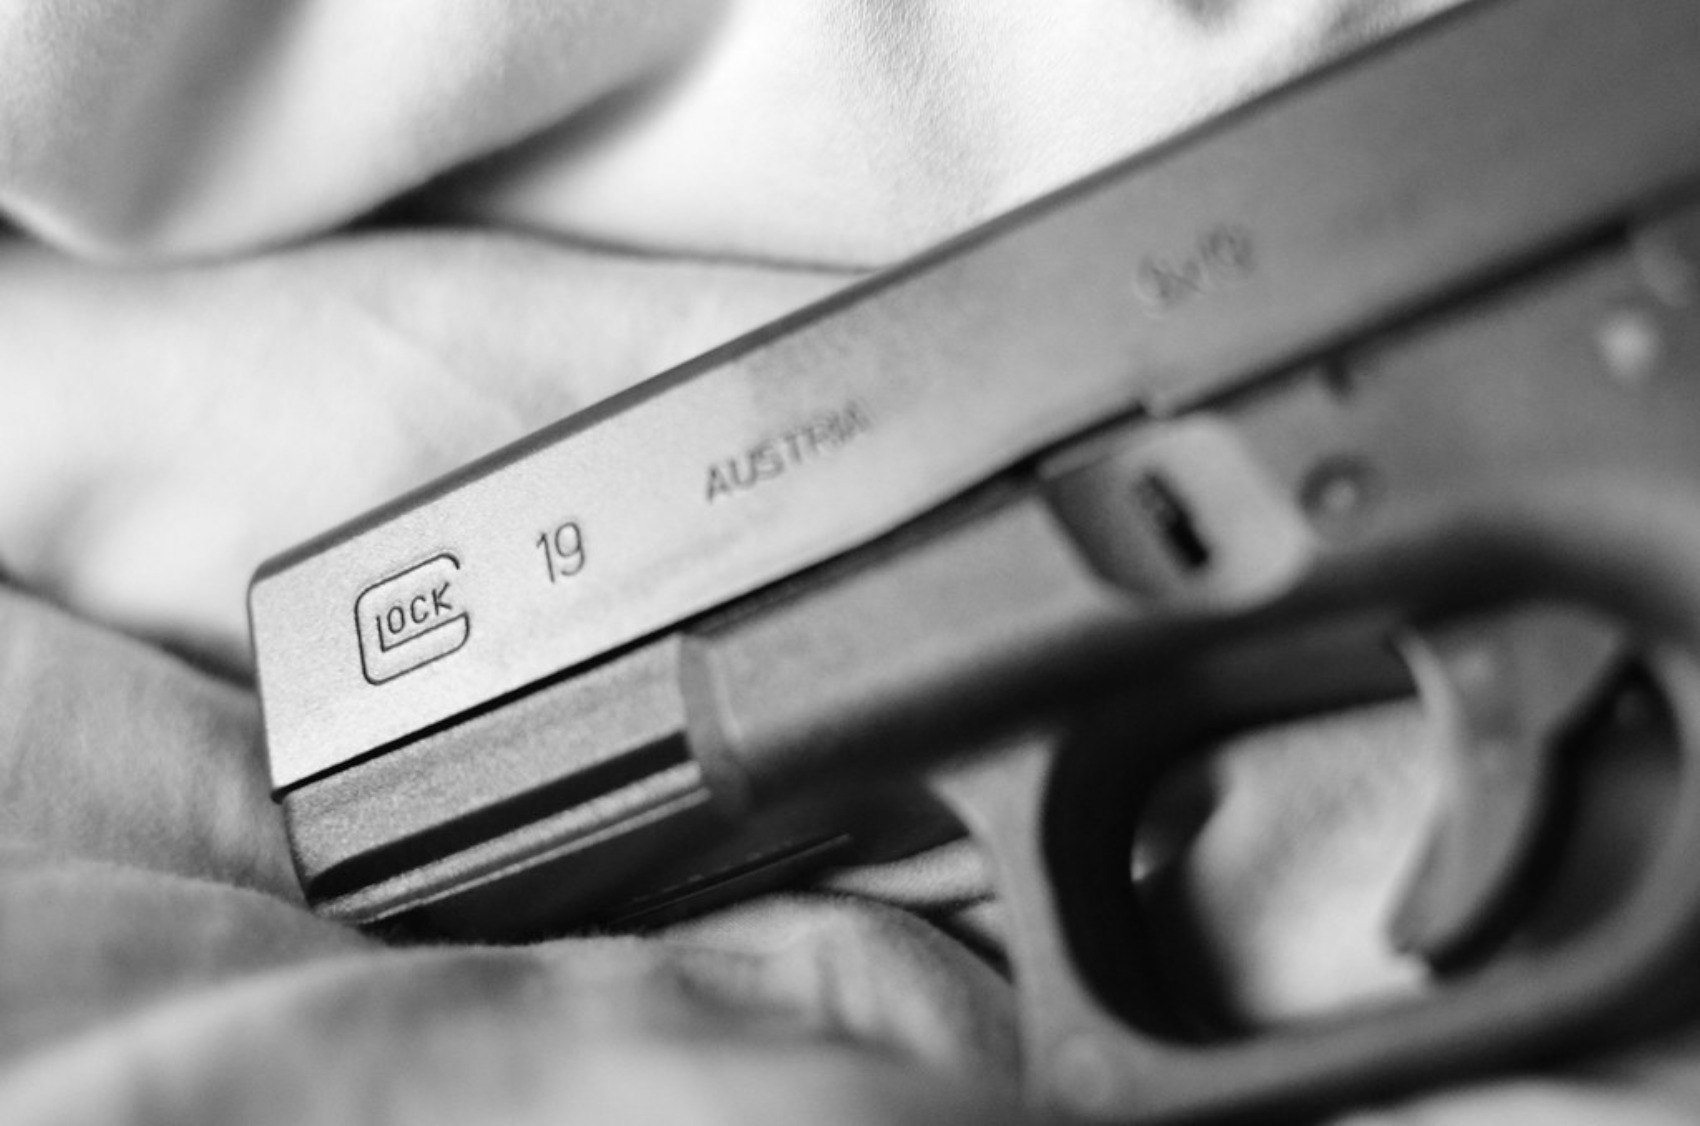 Glock 19 and Sig Sauer P226: Why Gun Owners Can't Stop Talking About